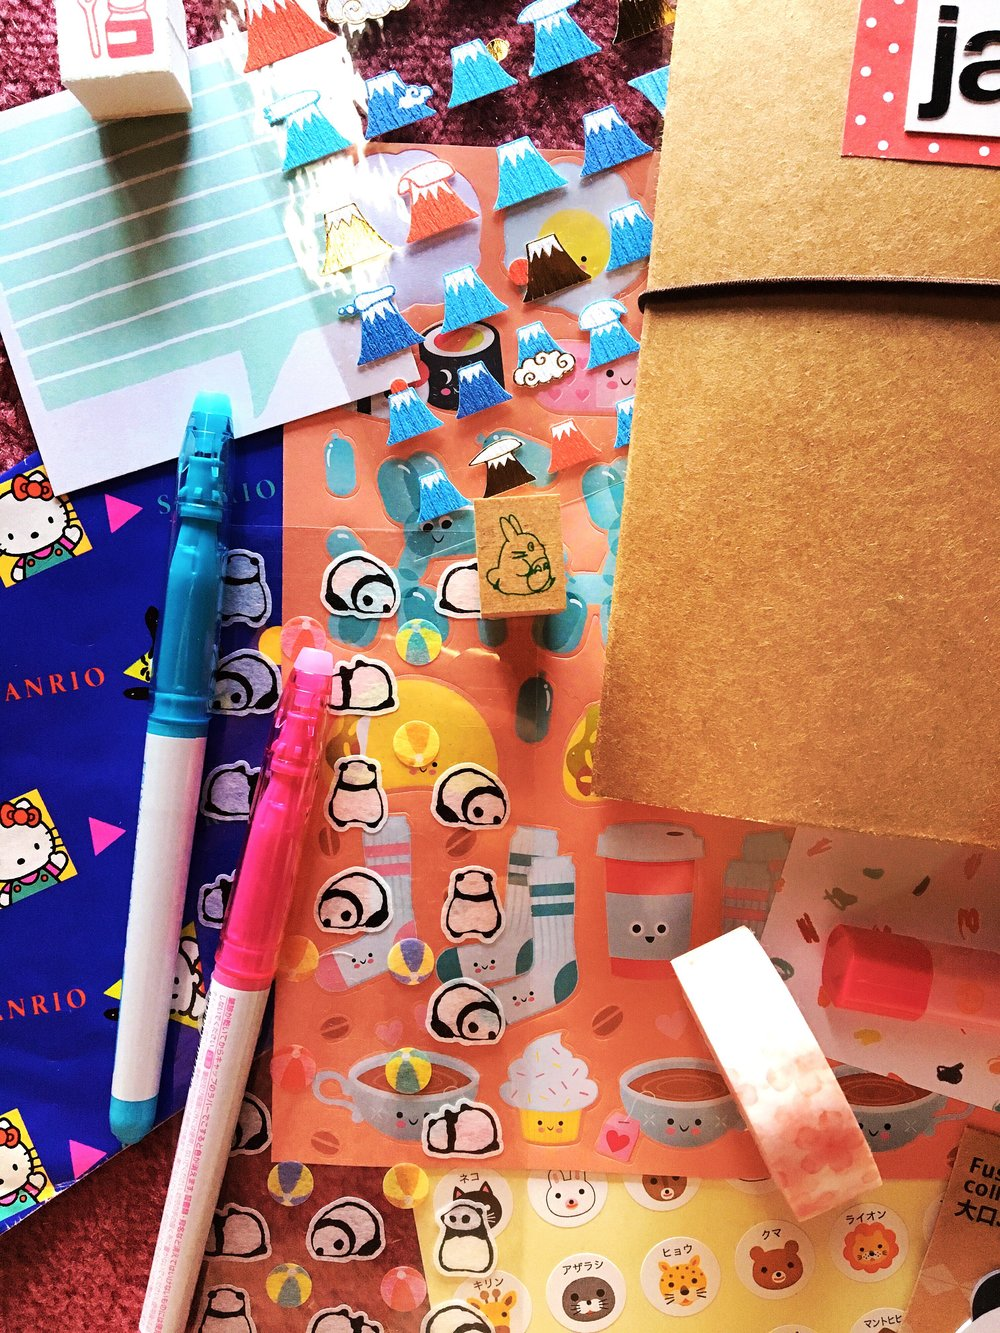 THE FUNKY FRESH / JAPAN TRAVEL JOURNAL + KAWAII STATIONARY